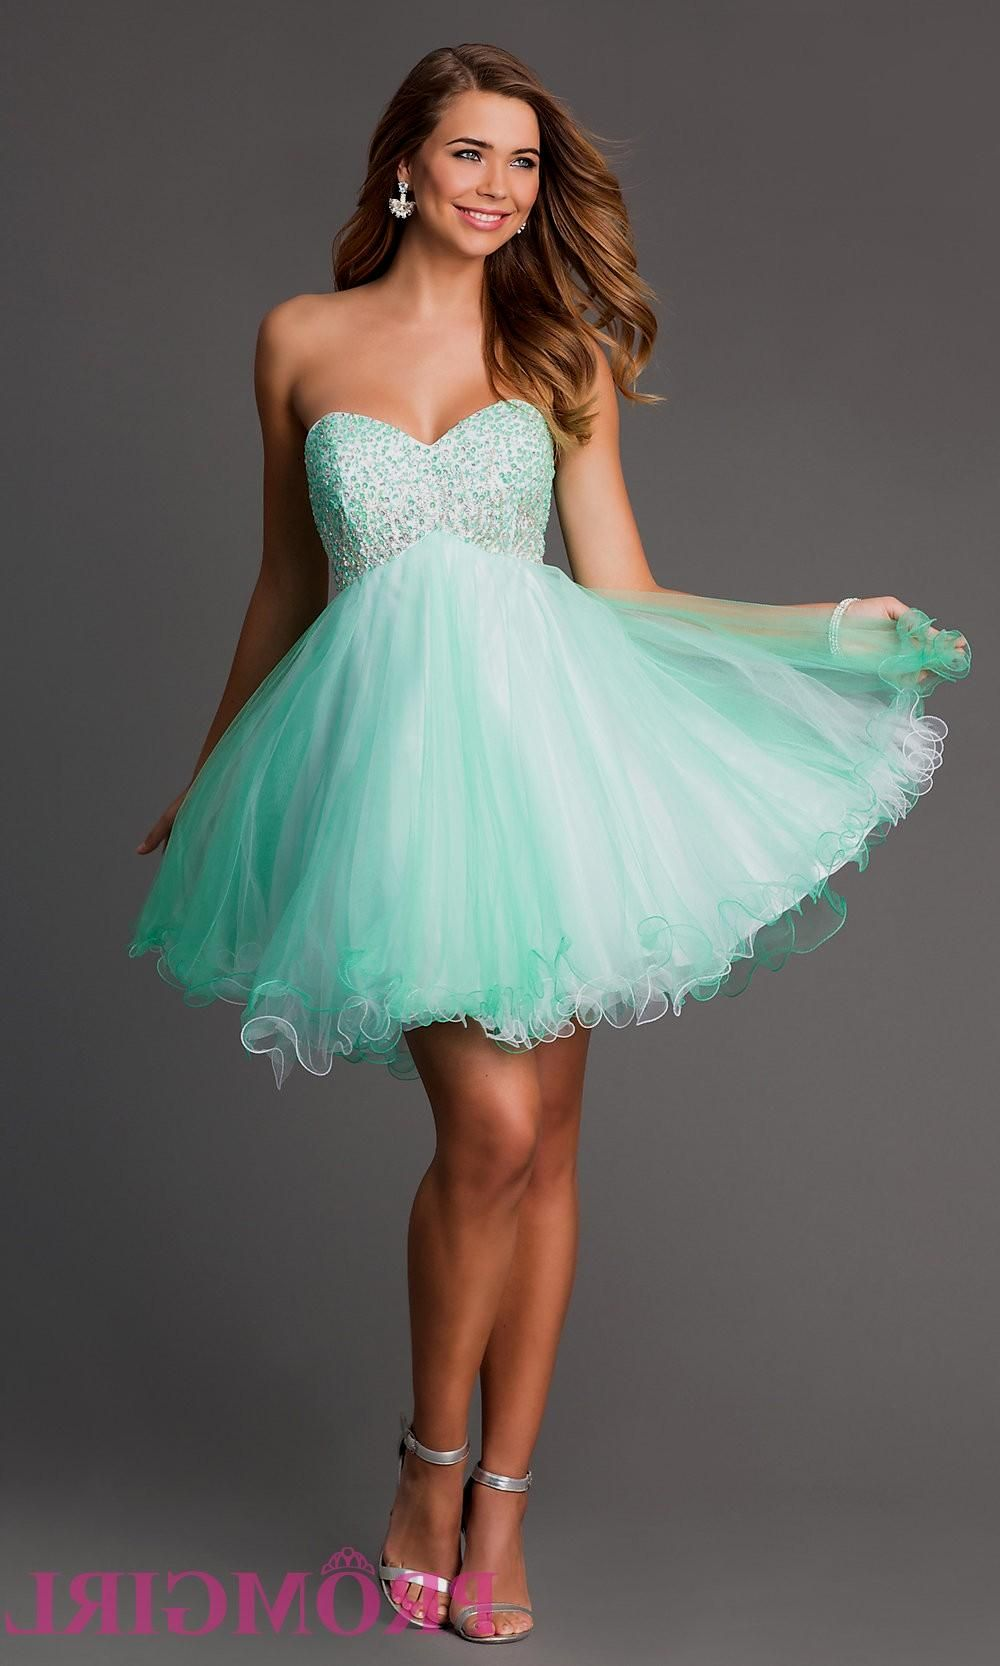 quinceanera-court-dresses-517046.jpg (1000×1666) | quince dresses ...